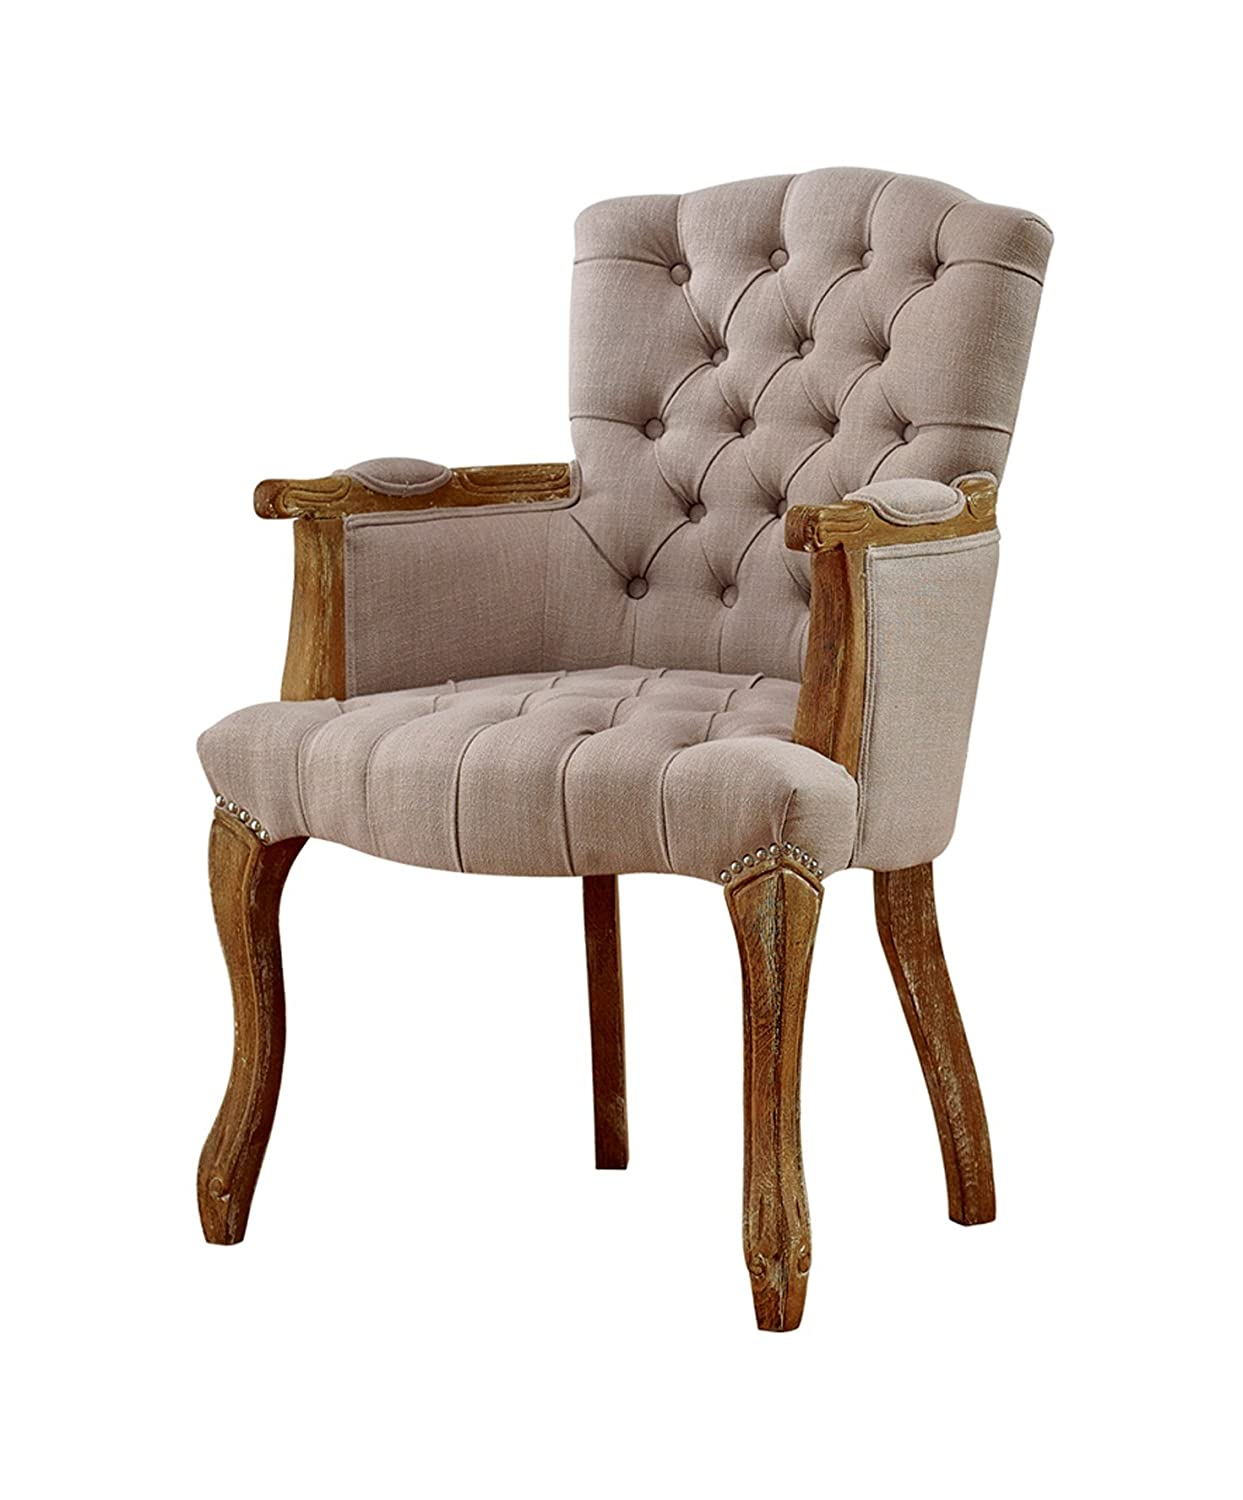 French Provincial Chair >> Amazon Com Baxton Studio Clemence French Provincial Weathered Oak